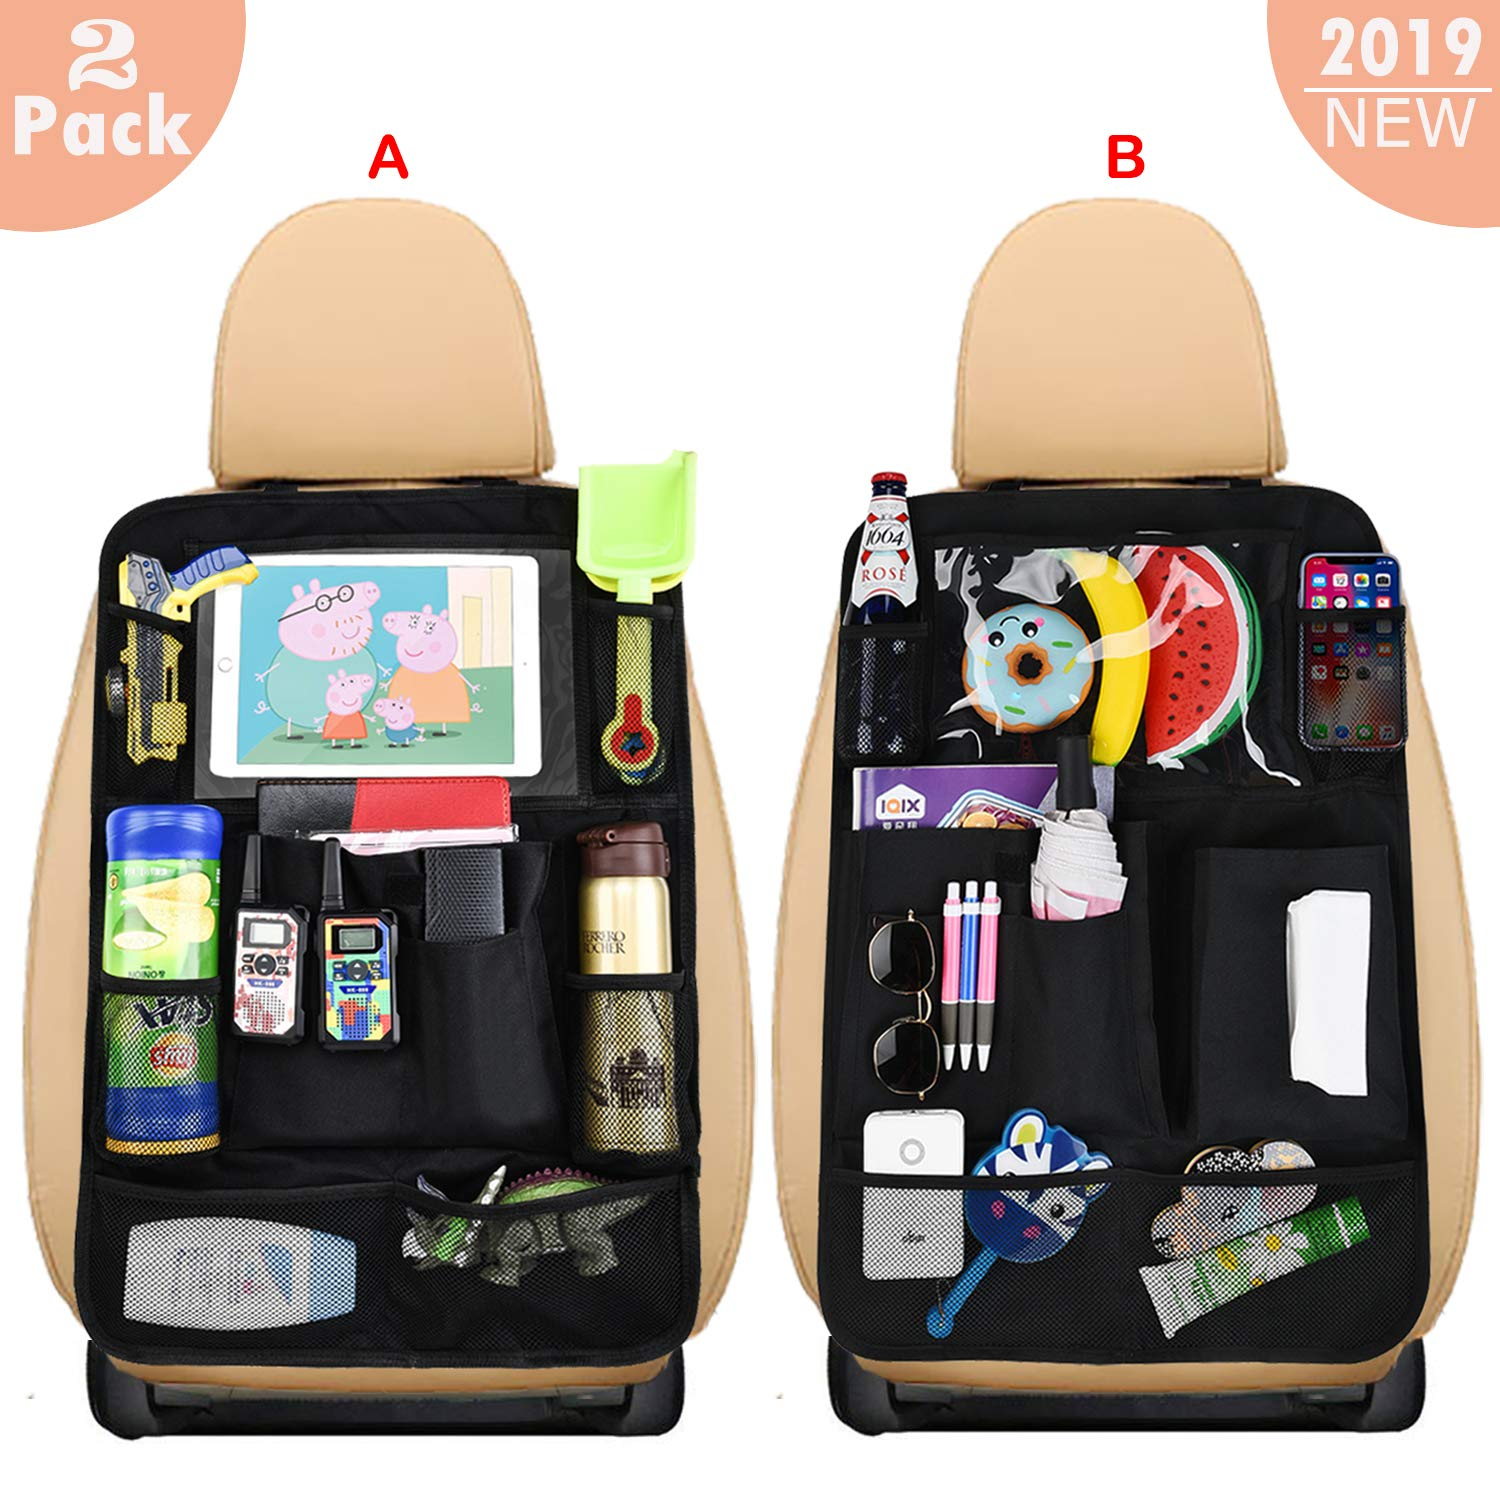 Car Seat Back Organizers | with 10'' Touch Screen Tablet Holder + 19 Storage Pockets |Back seat car Organizer for Kids Toy Universal Car Travel Accessories (A+B Style) by HmiL-U